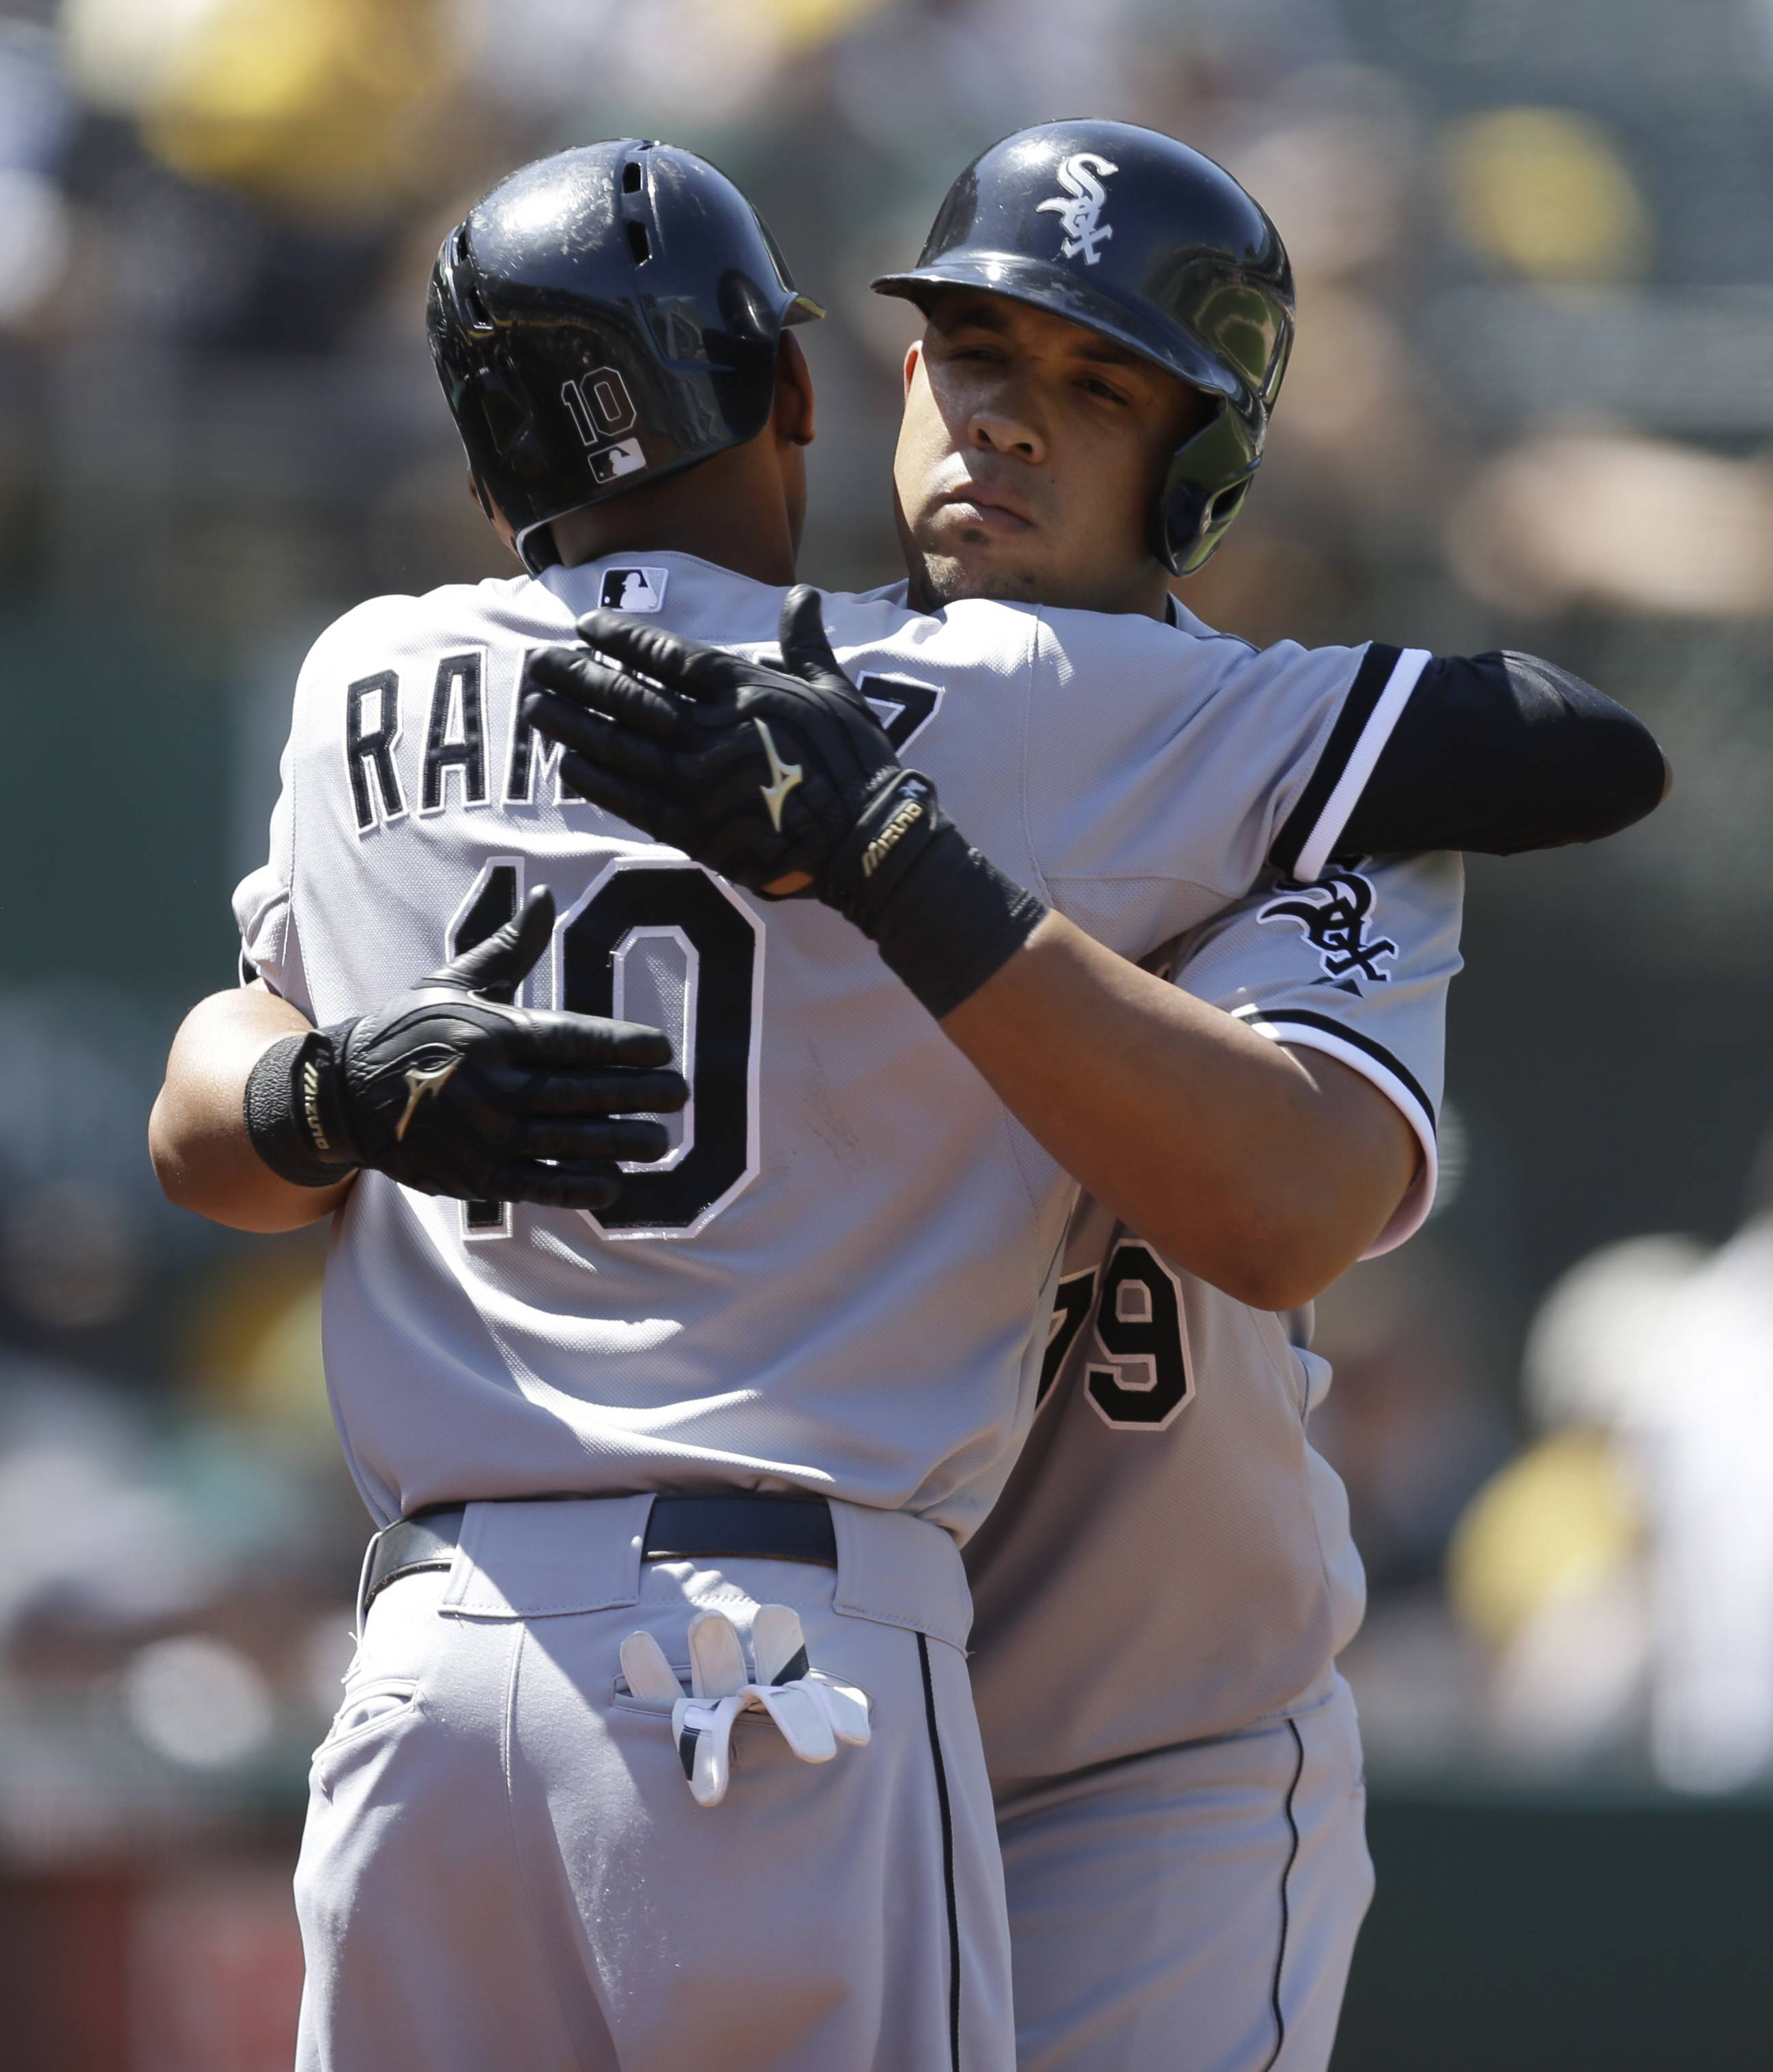 Chicago White Sox's Jose Abreu, right, is embraced by Alexei Ramirez (10) after Abreu hit a three-run home run off Oakland Athletics' Luke Gregerson in the eighth inning of a baseball game Wednesday, May 14, 2014, in Oakland, Calif. (AP Photo)